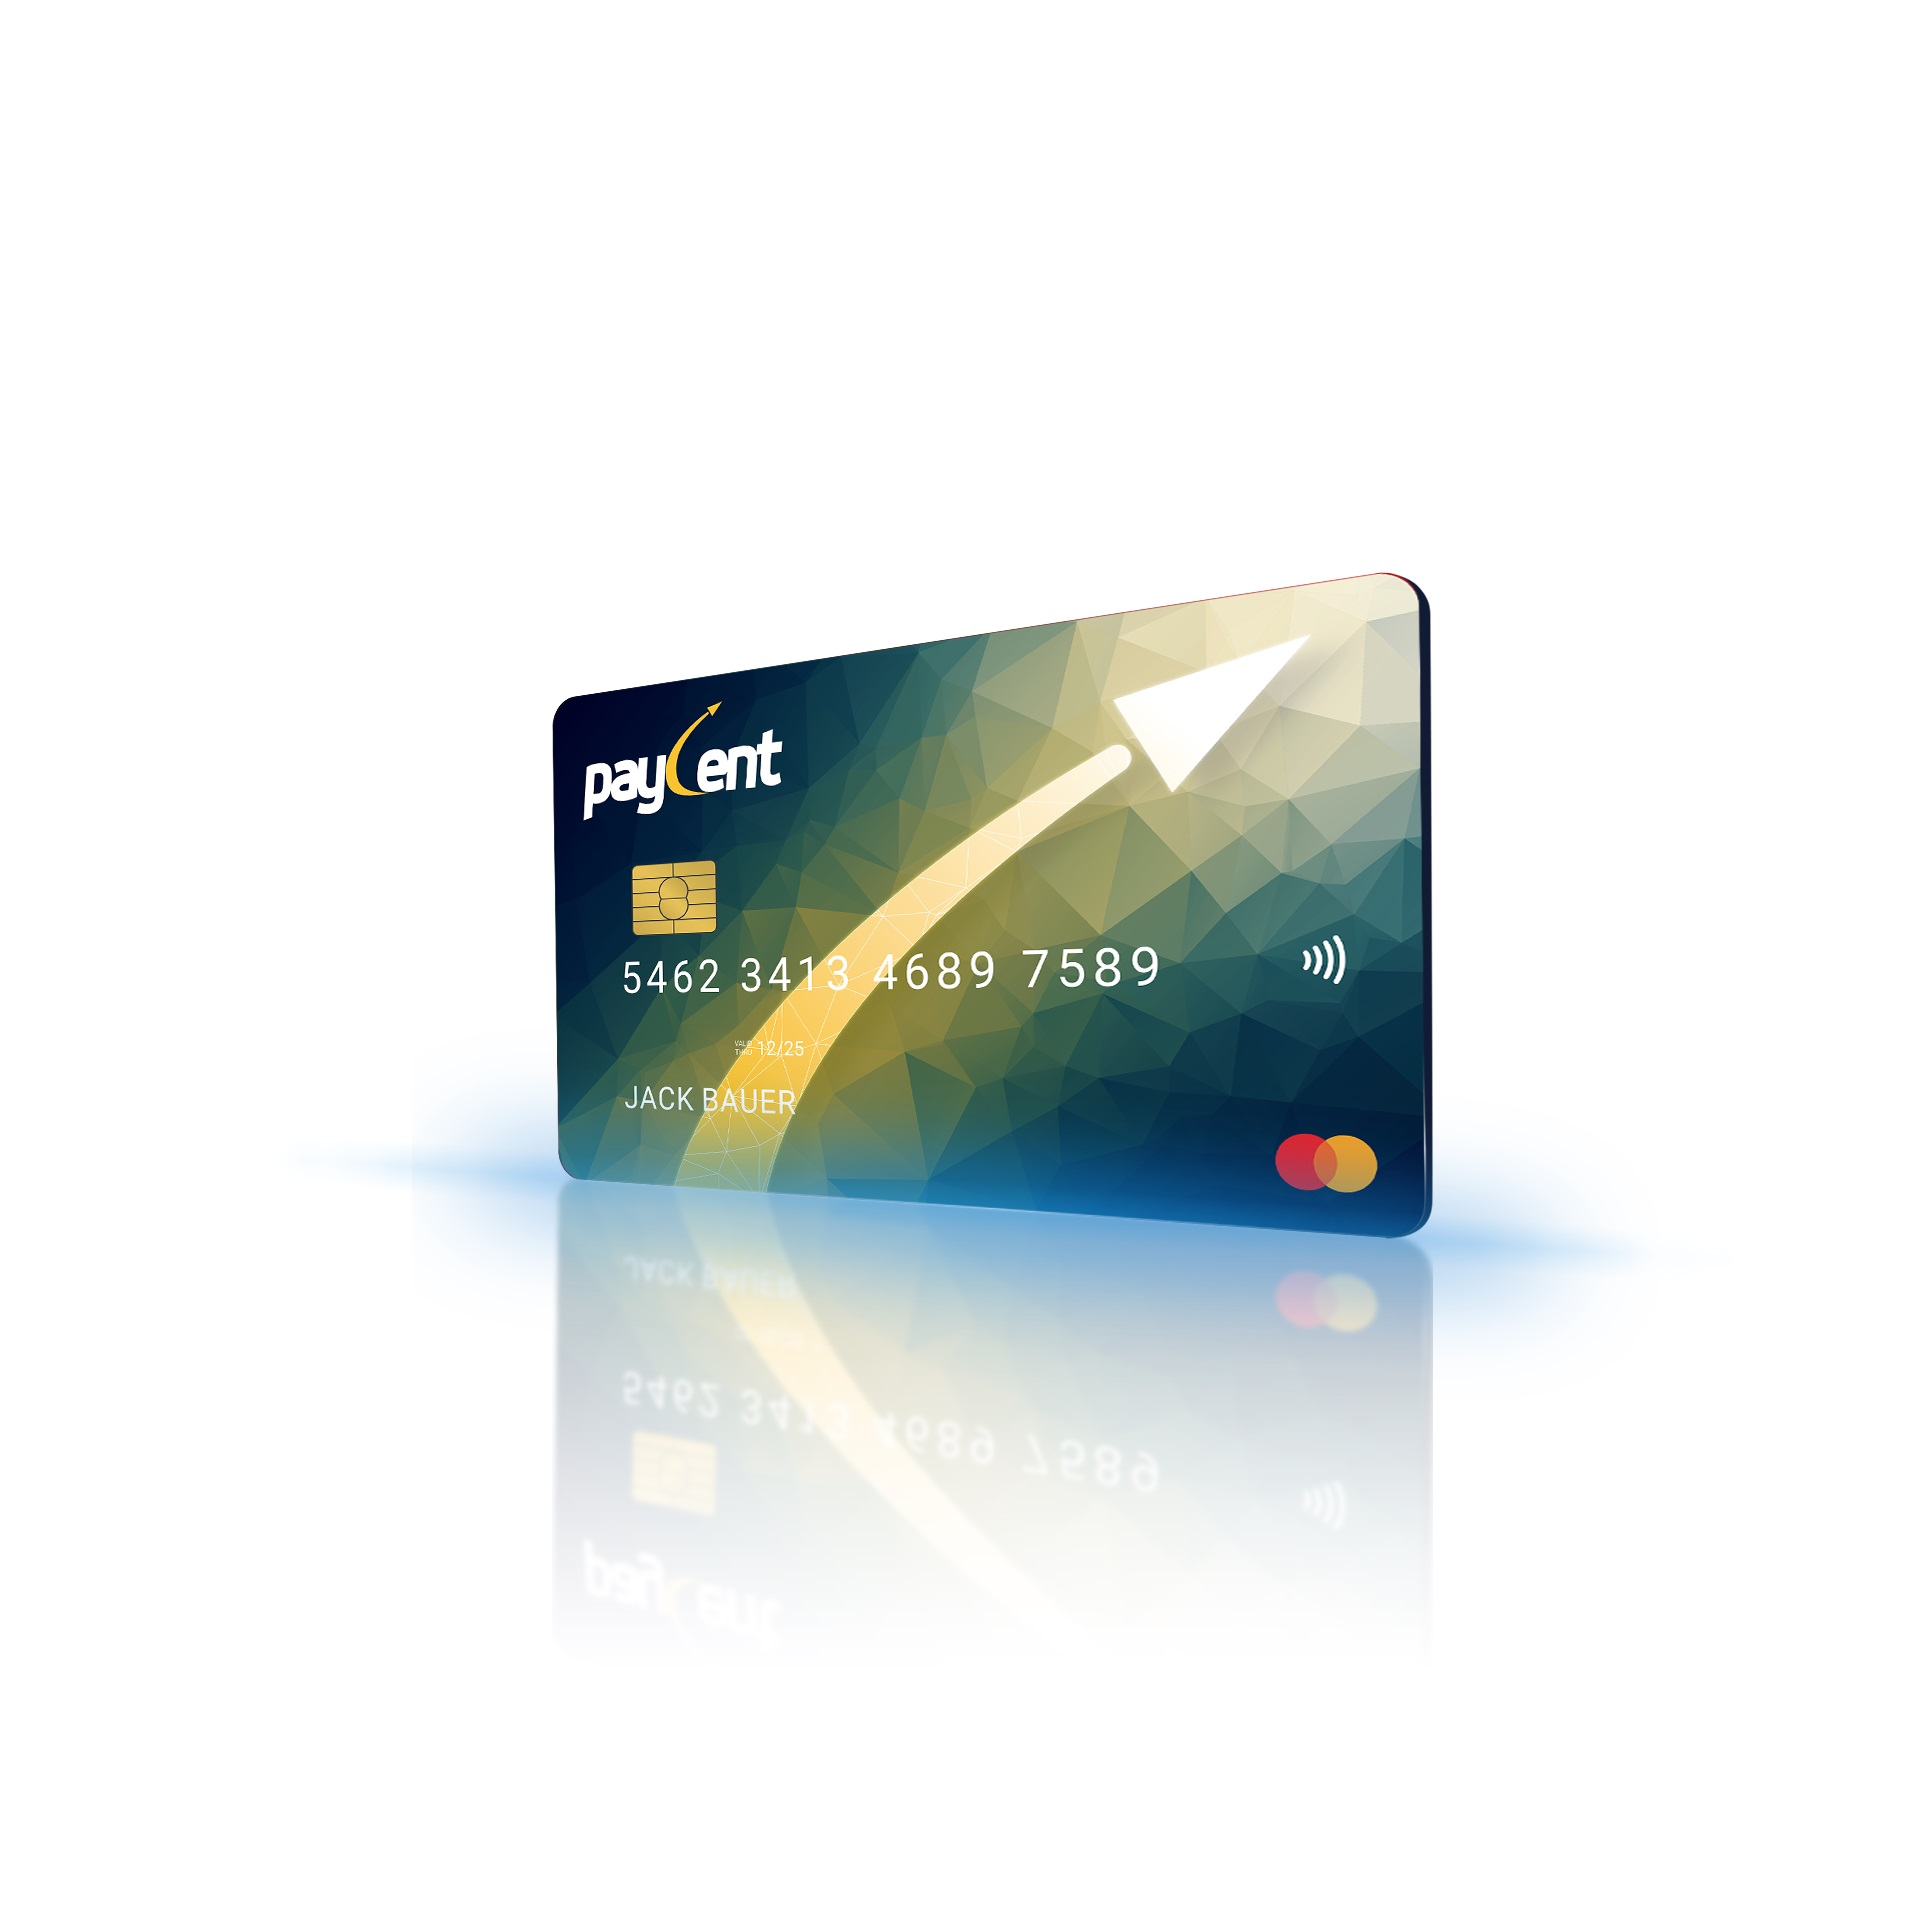 Mastercard Travel Currency Card